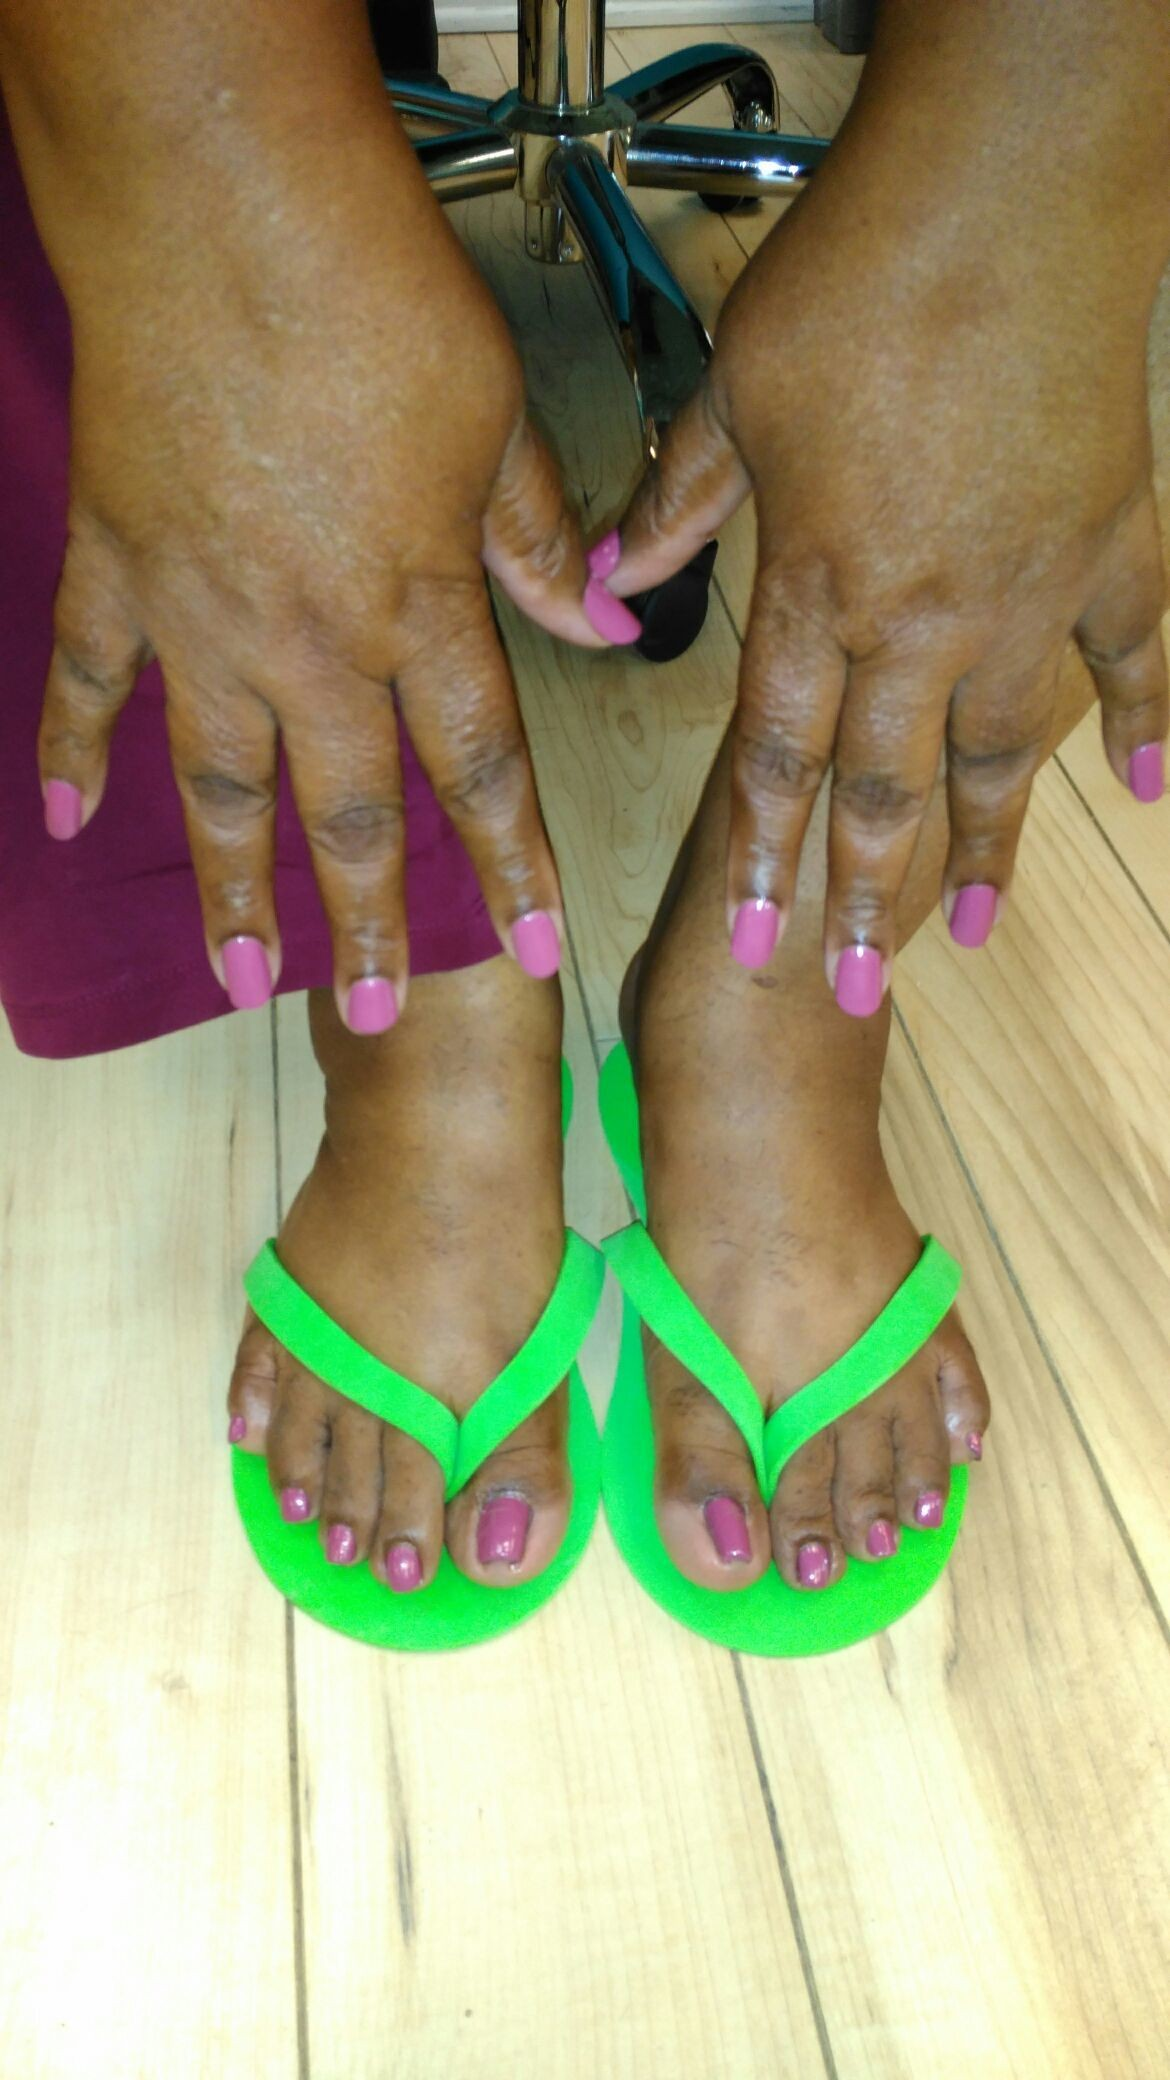 Thank u so much Ms. Donna for getting your #nails and #toes done with #ThaPolishQueen today! #ComeSeeMe #PrettyGurlsFeet #CleanBlackMasterNailTech #IDoNotRush #ITakeMyTime #UrMoneyWillBeWellSpent #UrToesMustBePerfectBeforeYouLeave #ComeExperienceMyHomemadeScrub #SpaologyNailSpa #ISupportBlackOwnedBusinesses Spaology Nail Spa & More 3000 Kavanaugh Blvd, Ste. C LR, AR 72205 To book your appointment email me @ PrettyGurlsFeet@gmail.com or call me at the salon @ 501.265.0303 or to book directly and purchase your service... Go to my website @ me on IG: @ms_beautiful_feet #ImWaitingOnYou